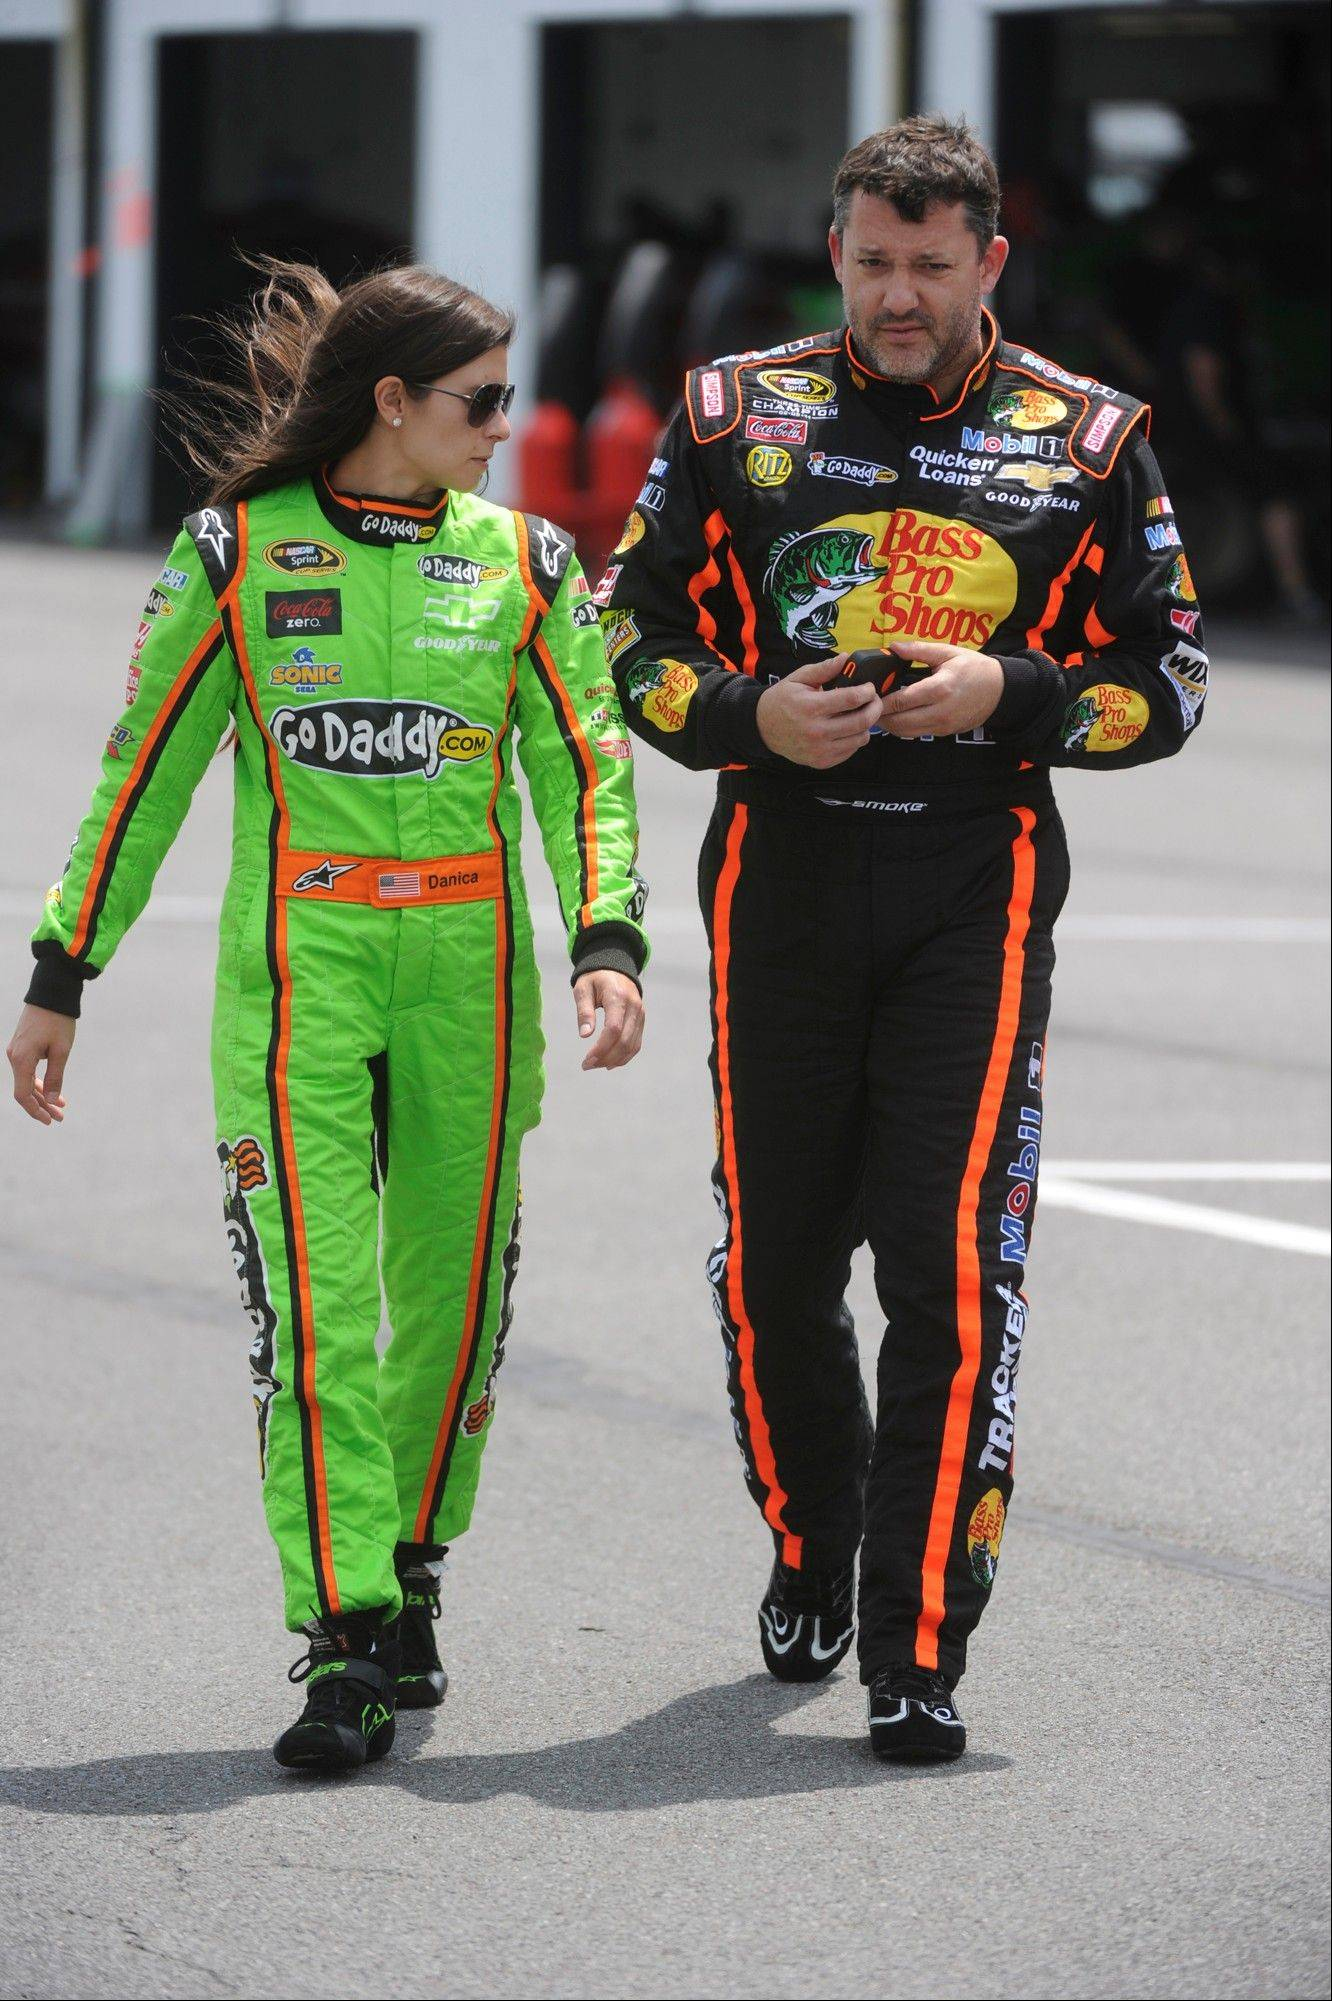 NASCAR drivers Danica Patrick, left, and Tony Stewart leave the garages at Pocono Raceway in Long Pond, Pa., after tire testing at the track on Wednesday, May 29, 2013.